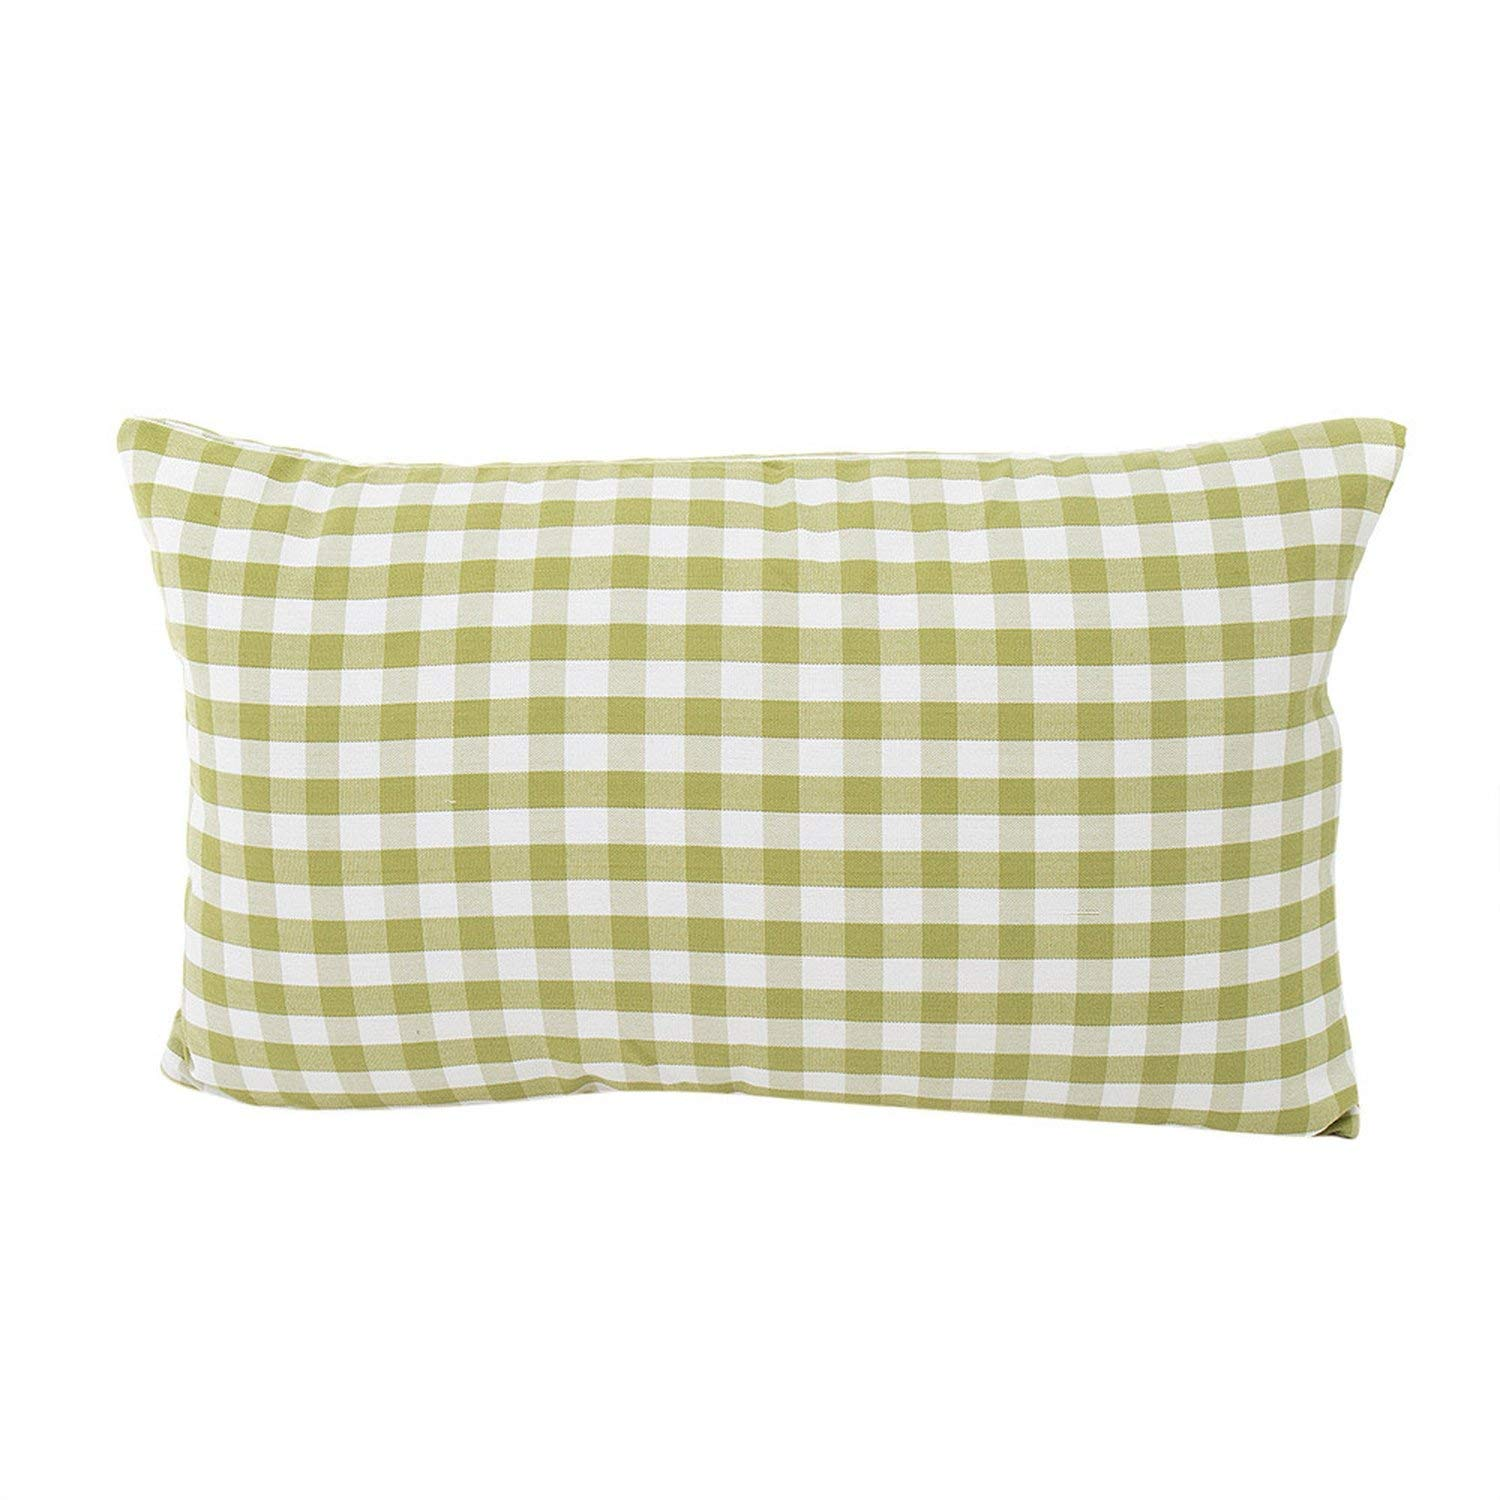 Amazon.com: cant be satisfied Pillow Cases Polyester Cotton ...